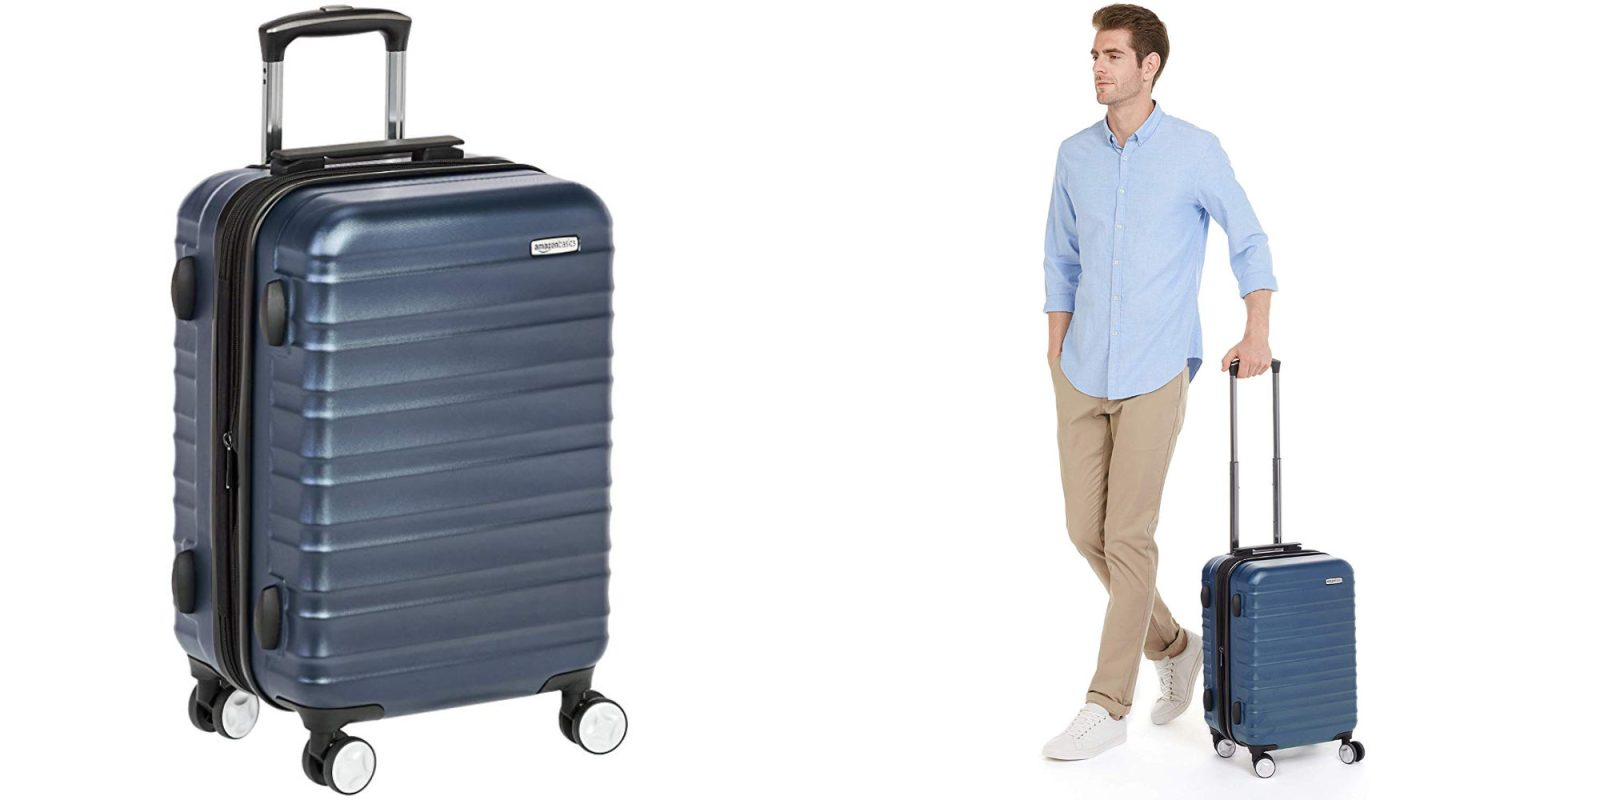 e74fac36c94b Amazon's 20-inch Premium Hardside Spinner Luggage drops to low of ...